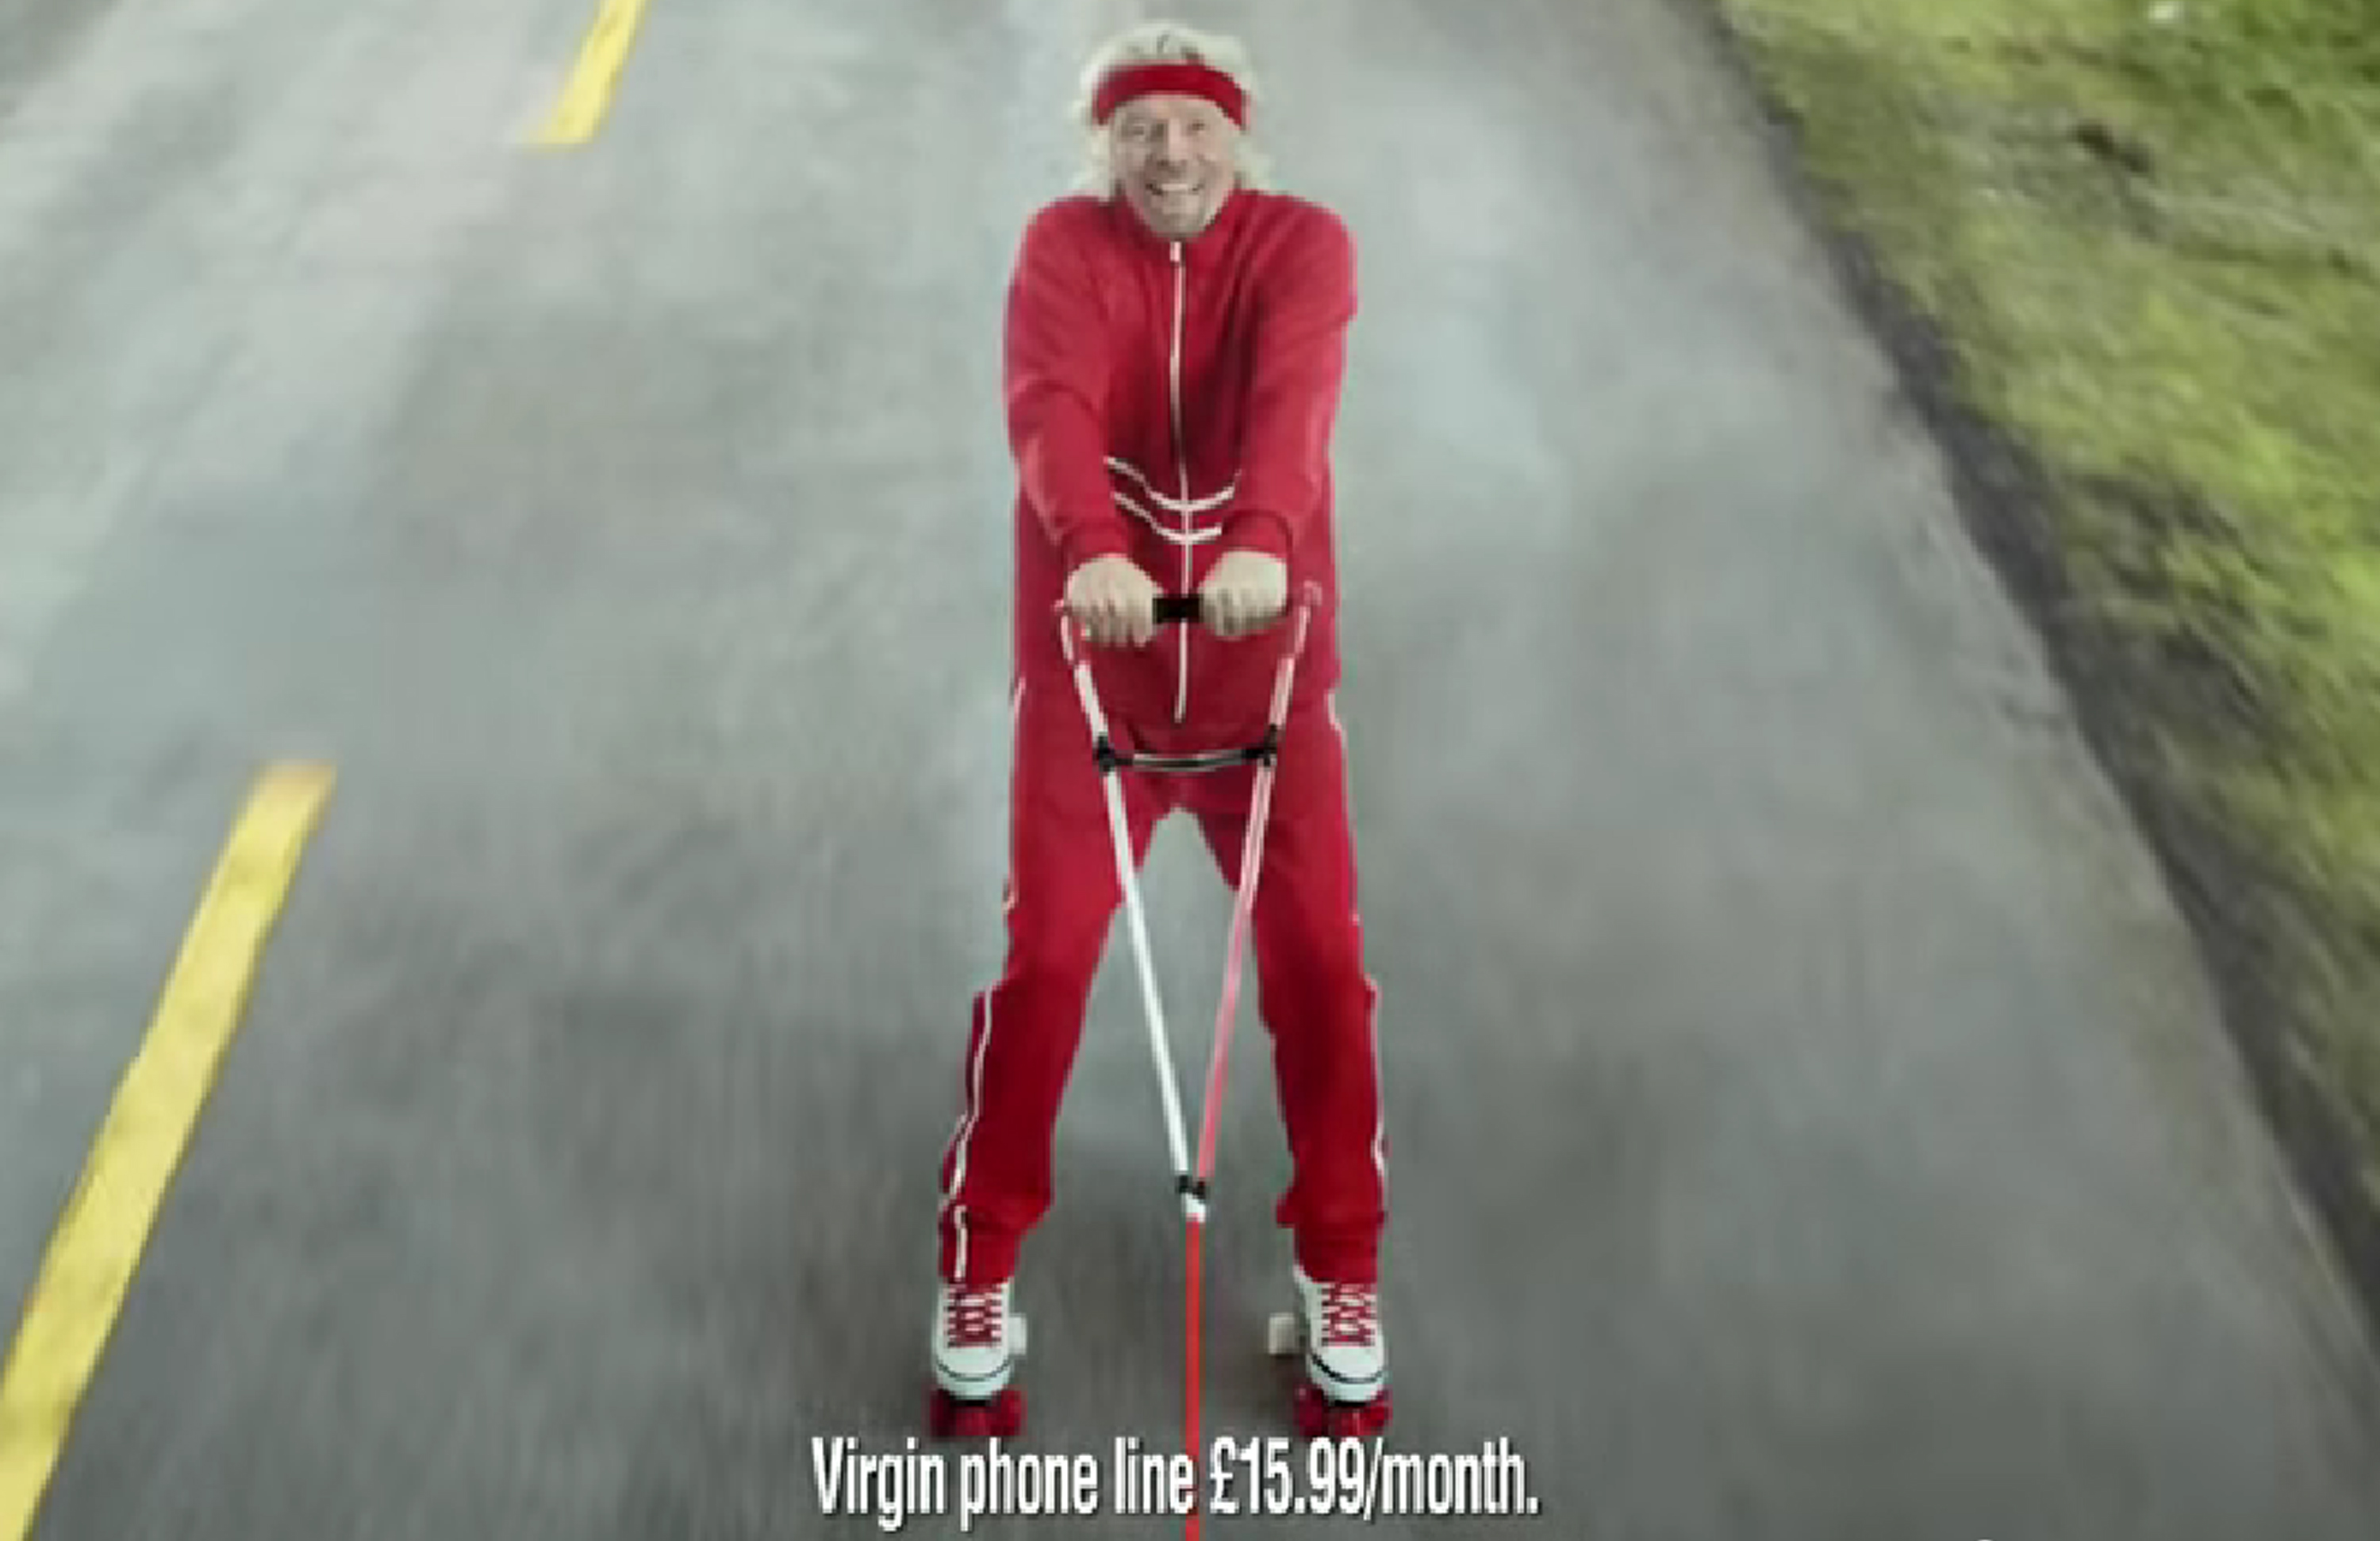 Richard Branson Virgin Media Advert